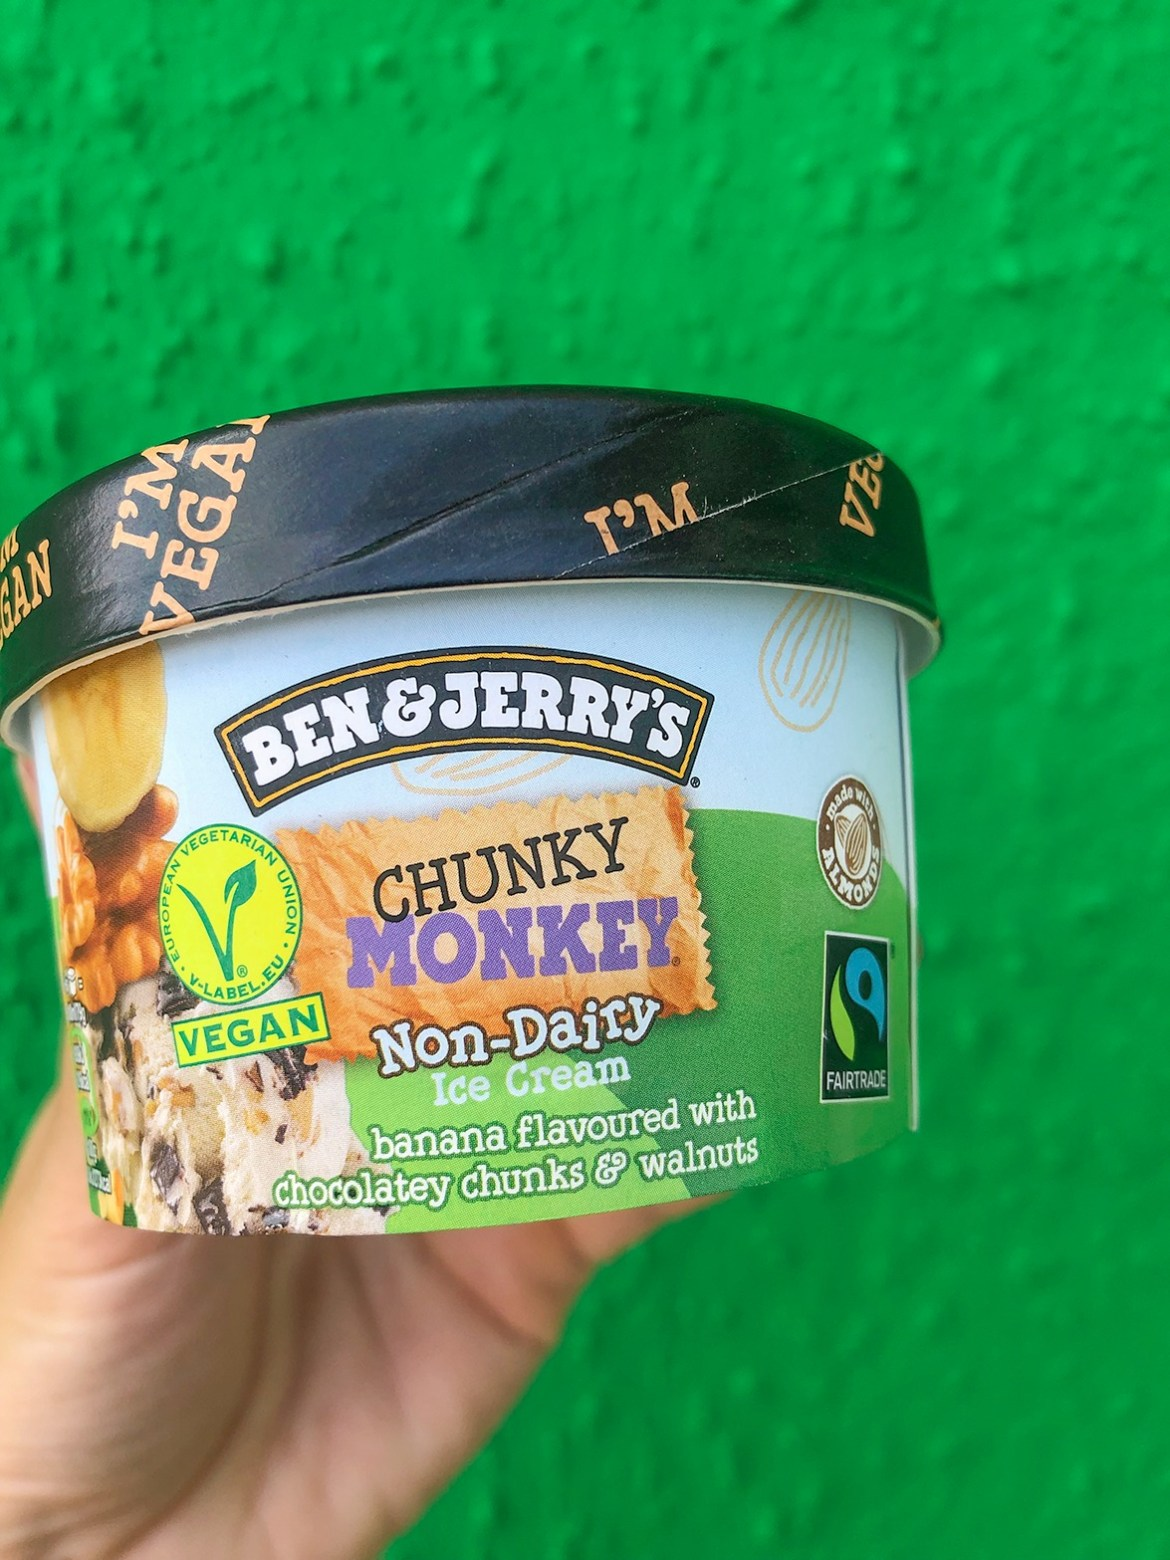 ben and jerry's chunky monkey non-dairy ice cream